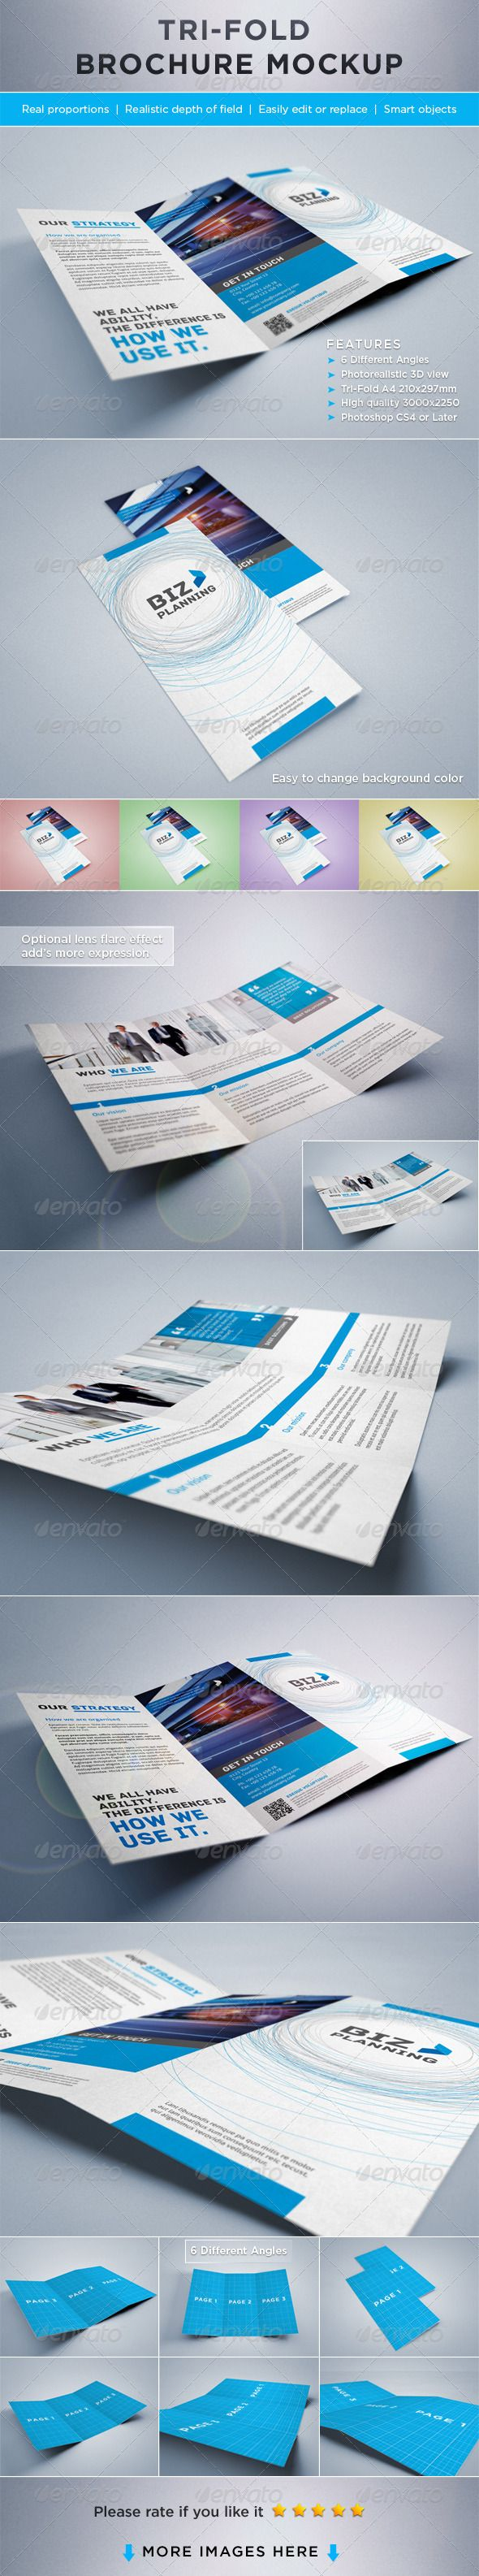 best images about banner font photorealistic tri fold brochure mock ups